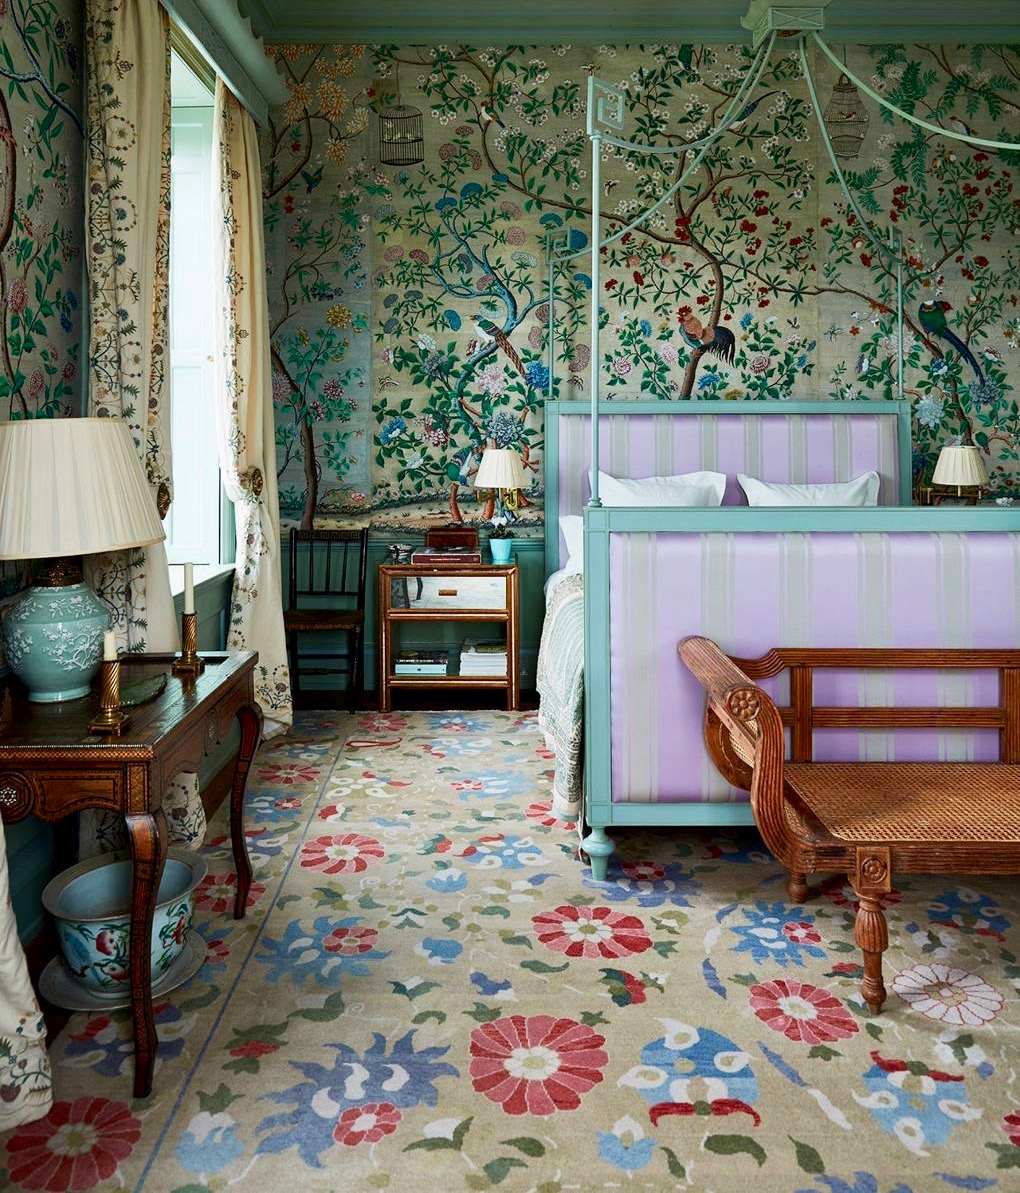 Superbe English Country House Bedroom With Chinoiserie Wallpaper And A Canopy Bed